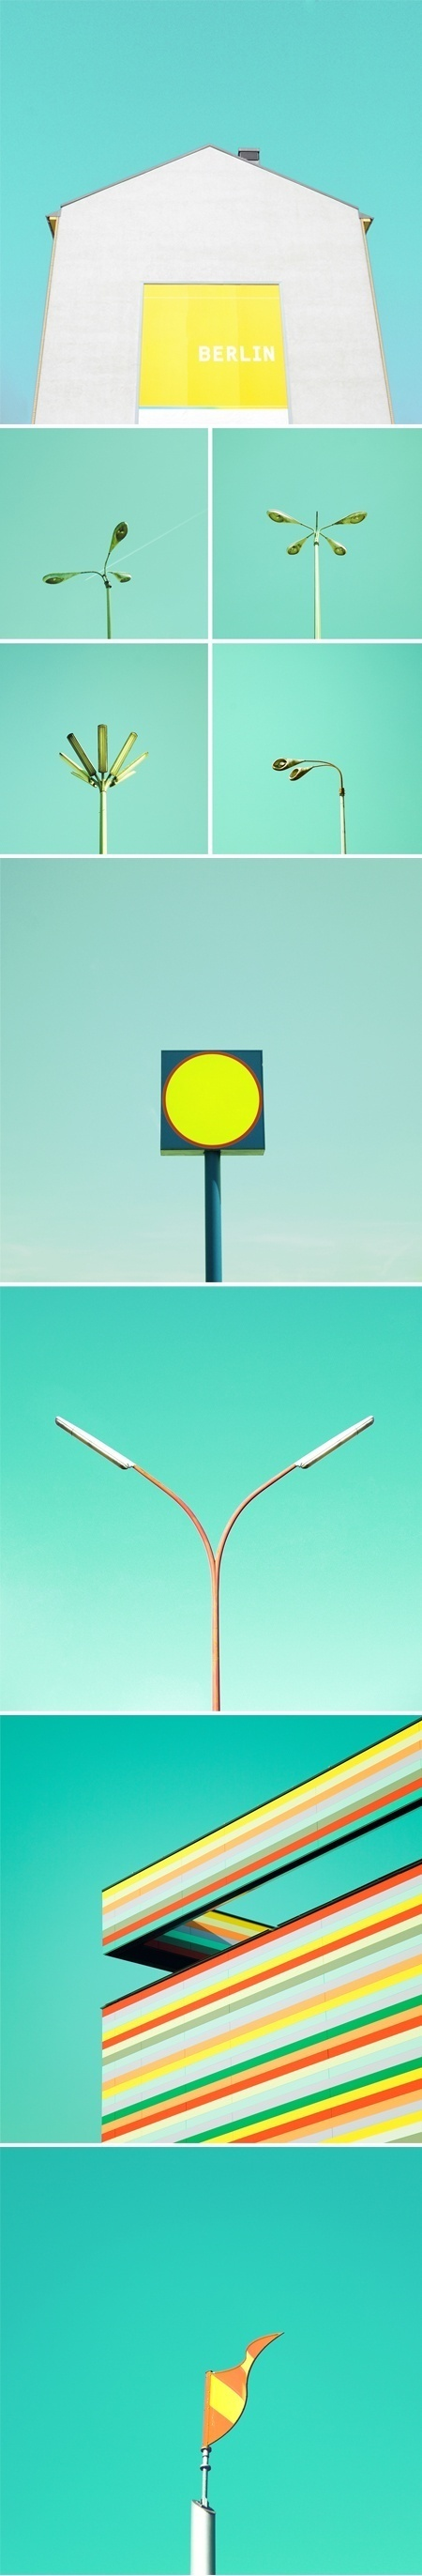 matthias heiderich #yellow #photography #aqua #color